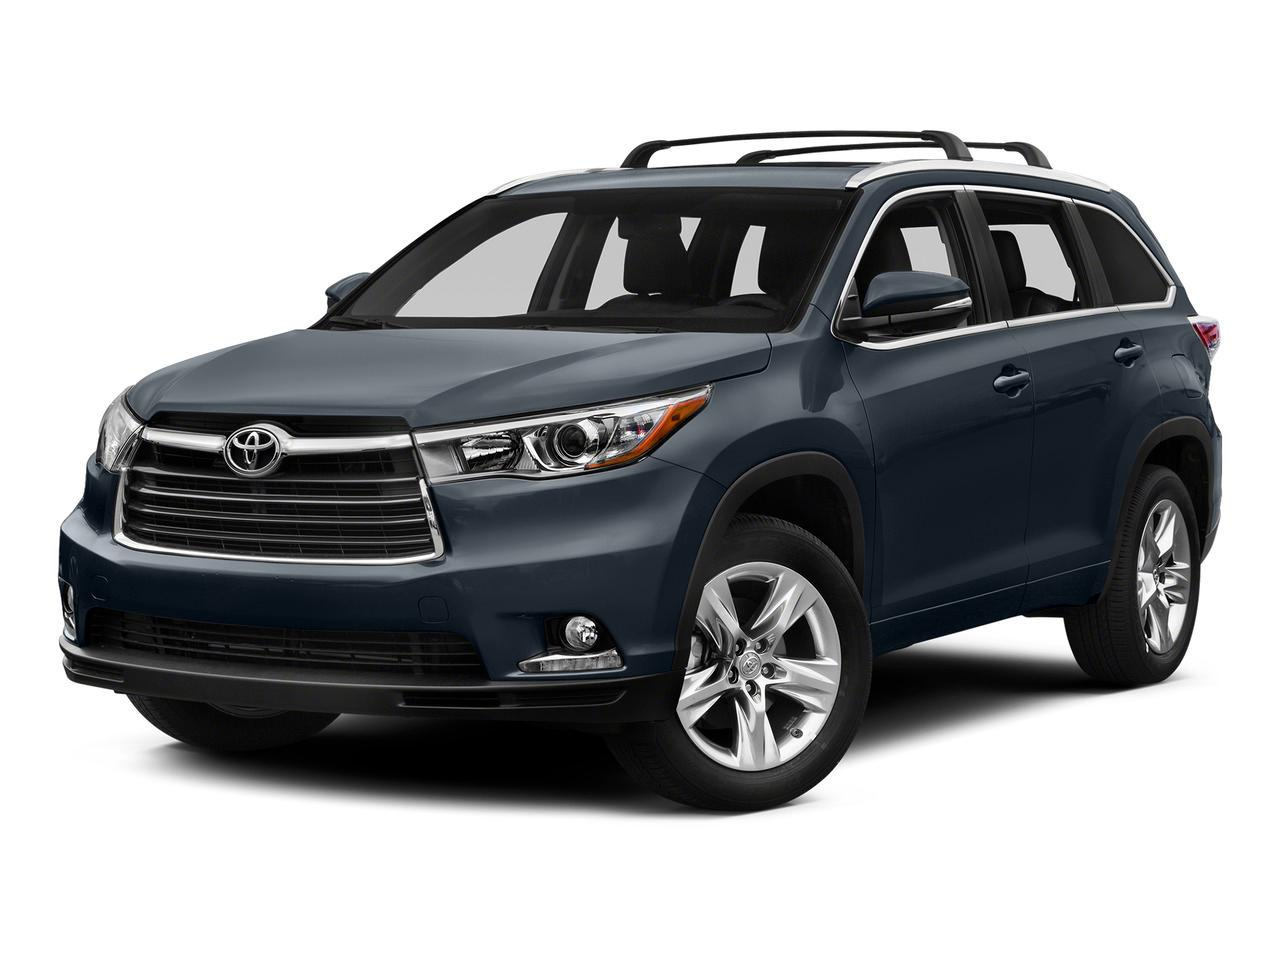 2015 Toyota Highlander Vehicle Photo in Portland, OR 97225